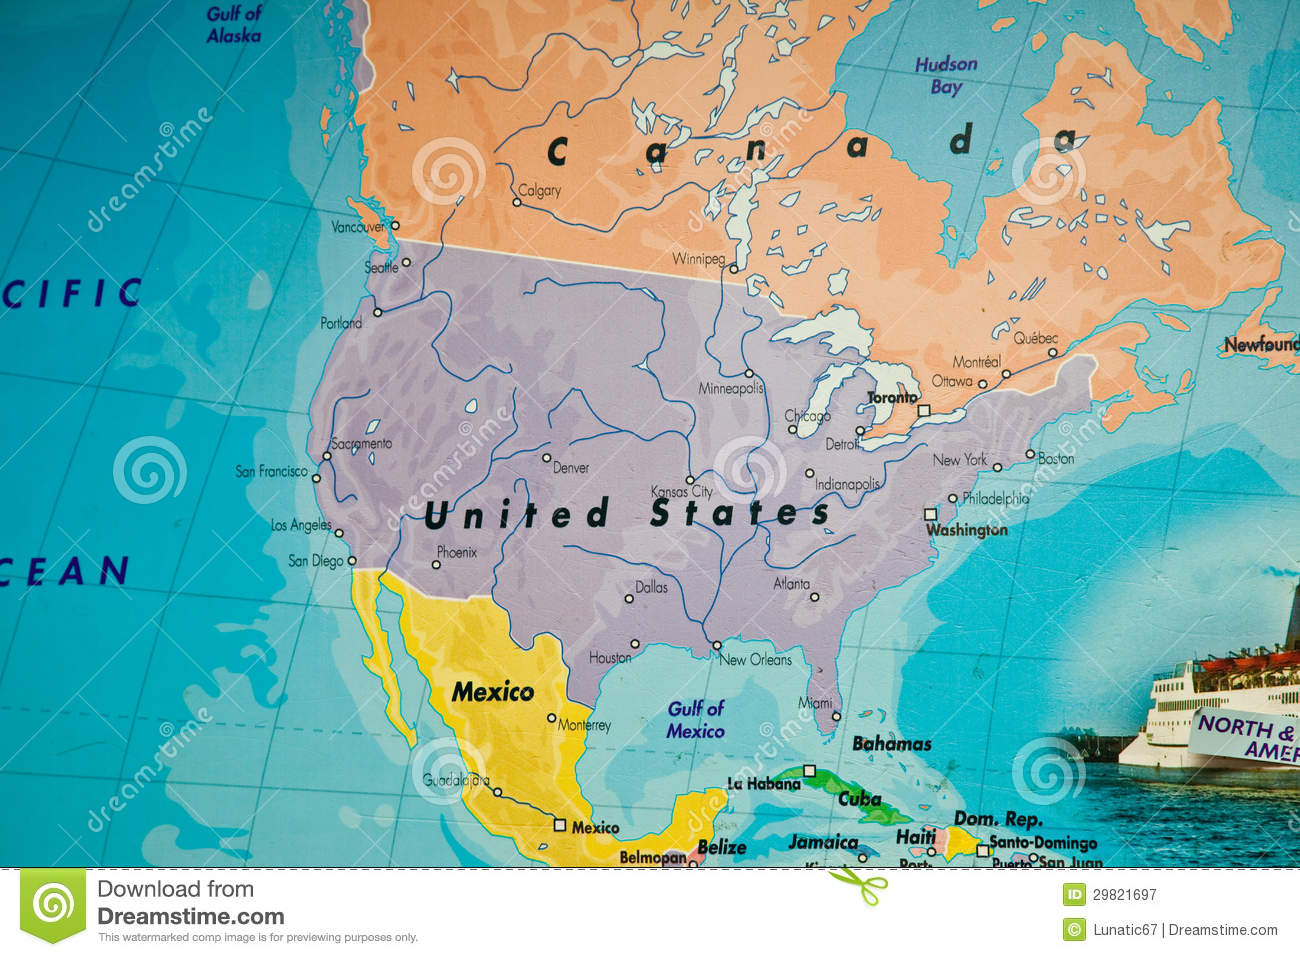 View Map Of United States.United States Map Stock Image Image Of Line Paper Creative 29821697